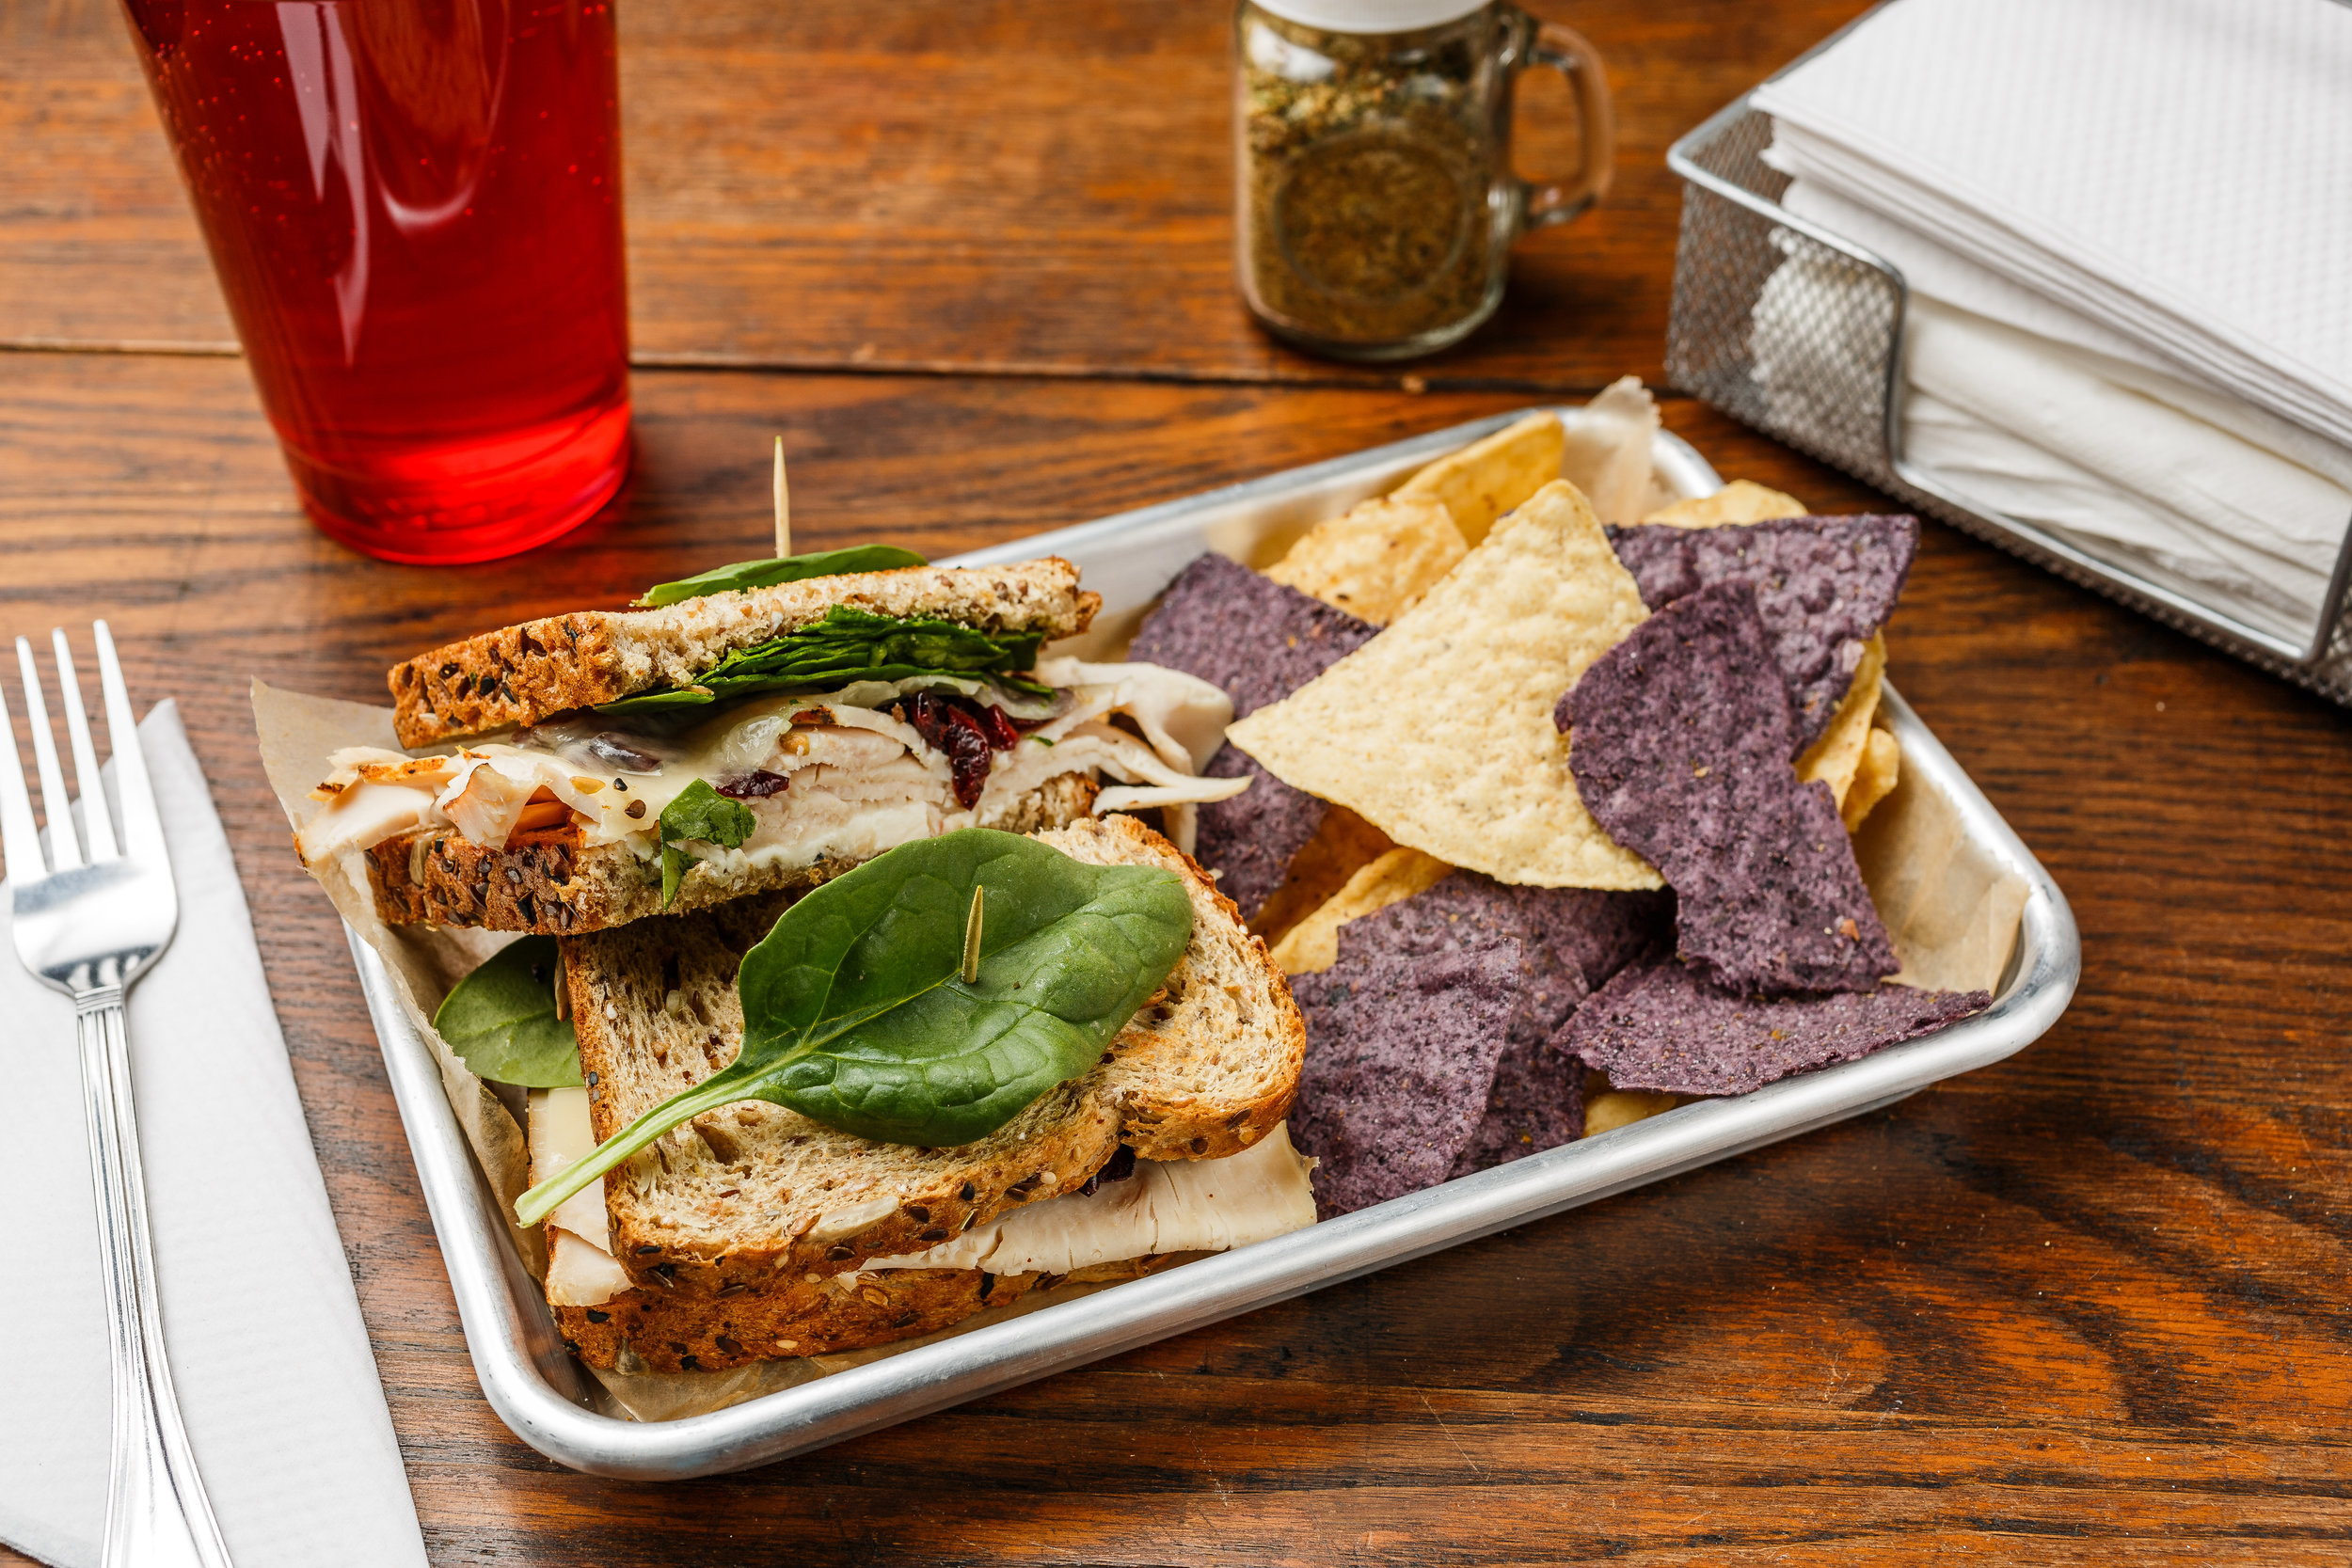 Gobbler  Boar's head turkey, cranberries, Swiss cheese, cream cheese, and spinach. Made as a wrap, sandwich, or salad. Served with organic tortilla chips.   $7.29